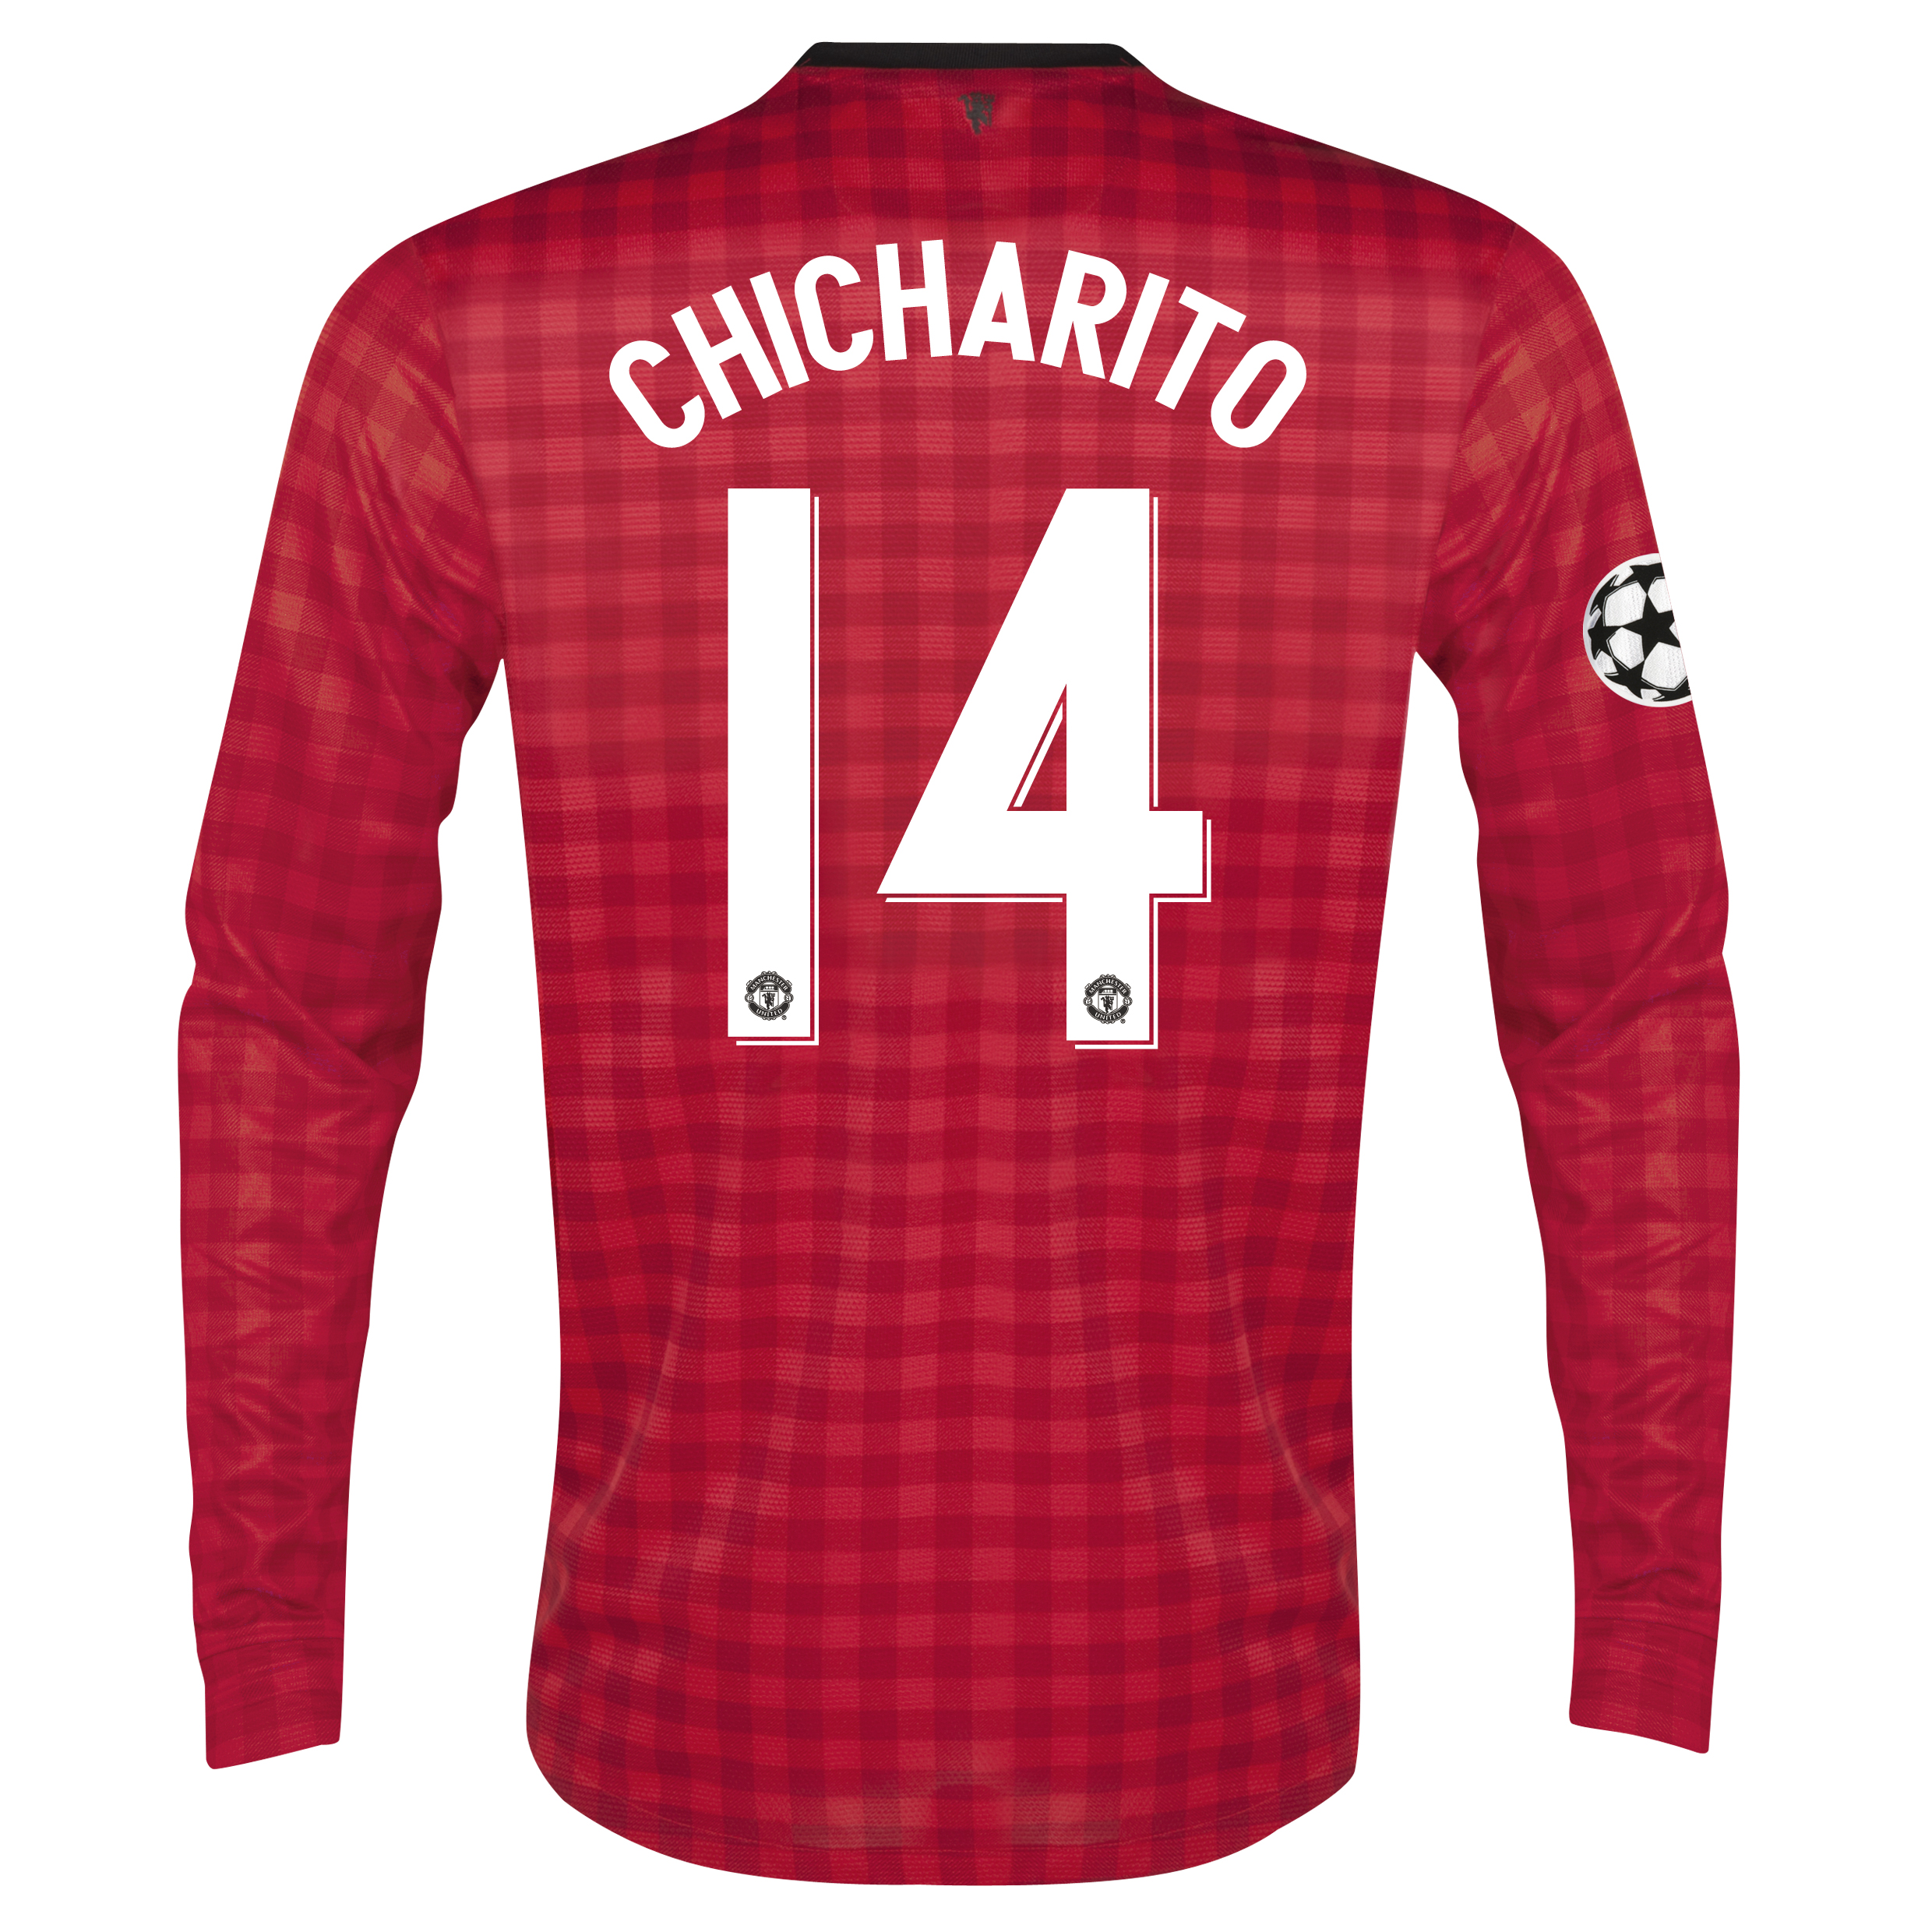 Man United UEFA Champions League Home Shirt 2012/13 - Long Sleeved with Chicharito 14 printing